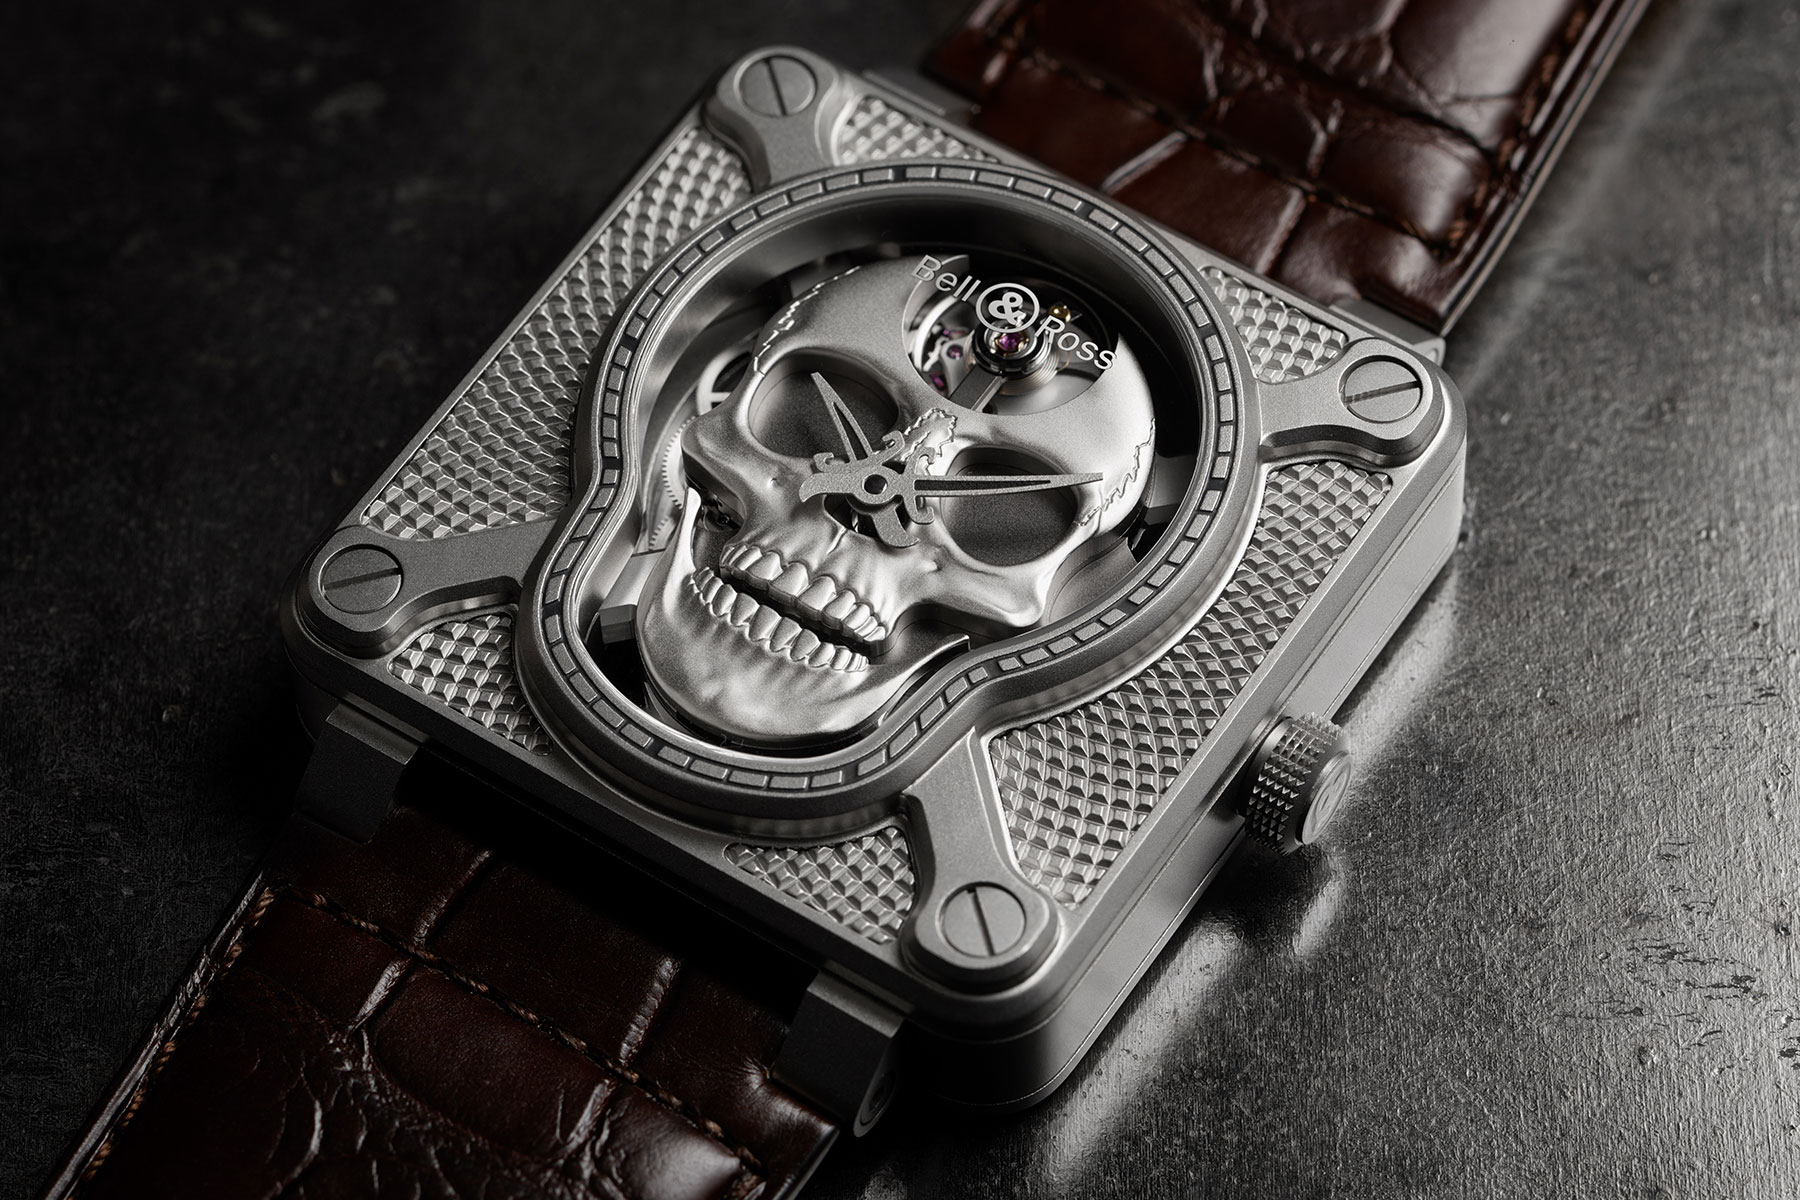 Bell & Ross BR01 Laughing Skull arrives just in time for